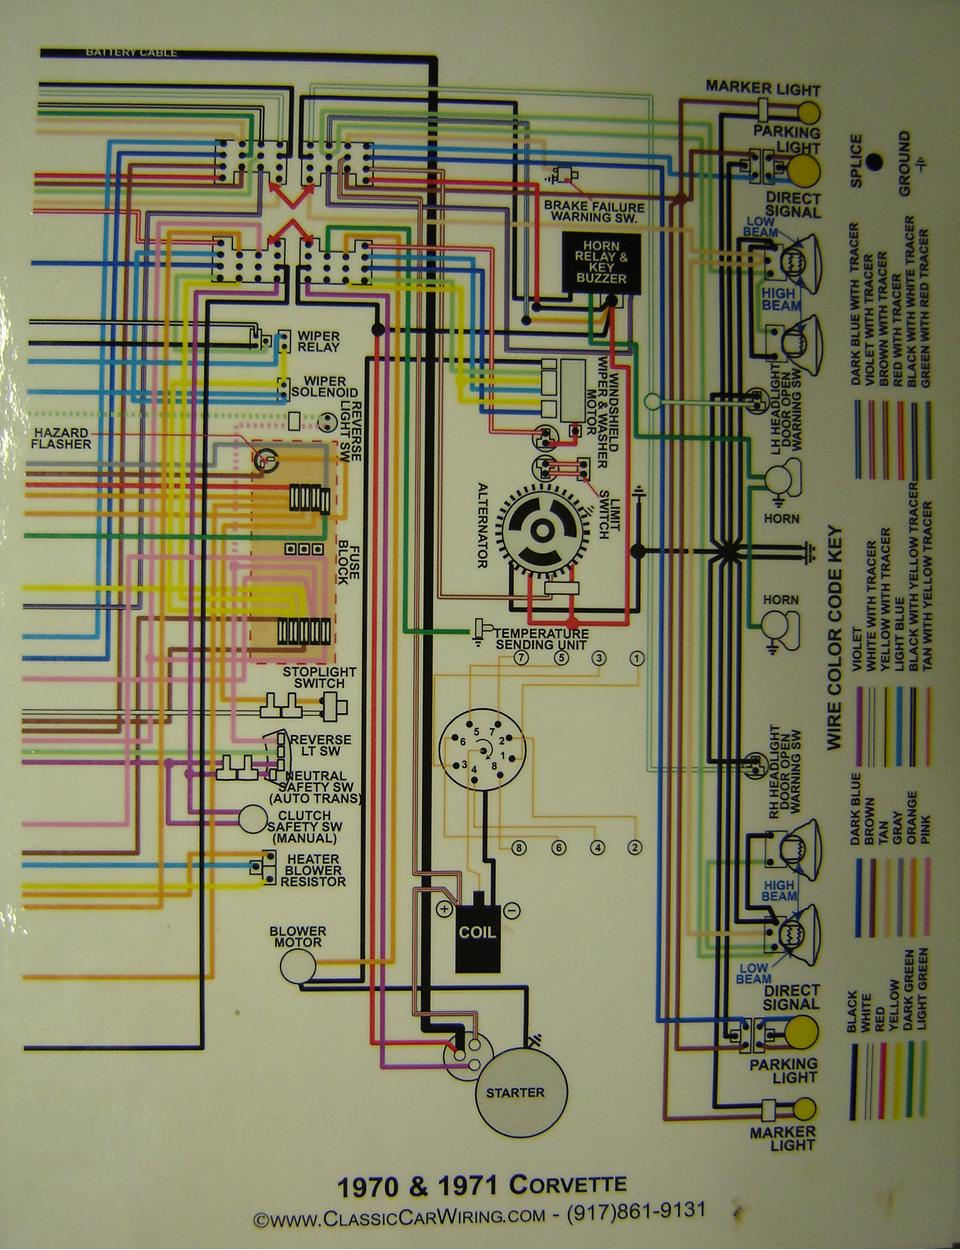 1970 71 corvette color wiring diagram B chevy diagrams 1984 corvette wiring diagram schematic at virtualis.co